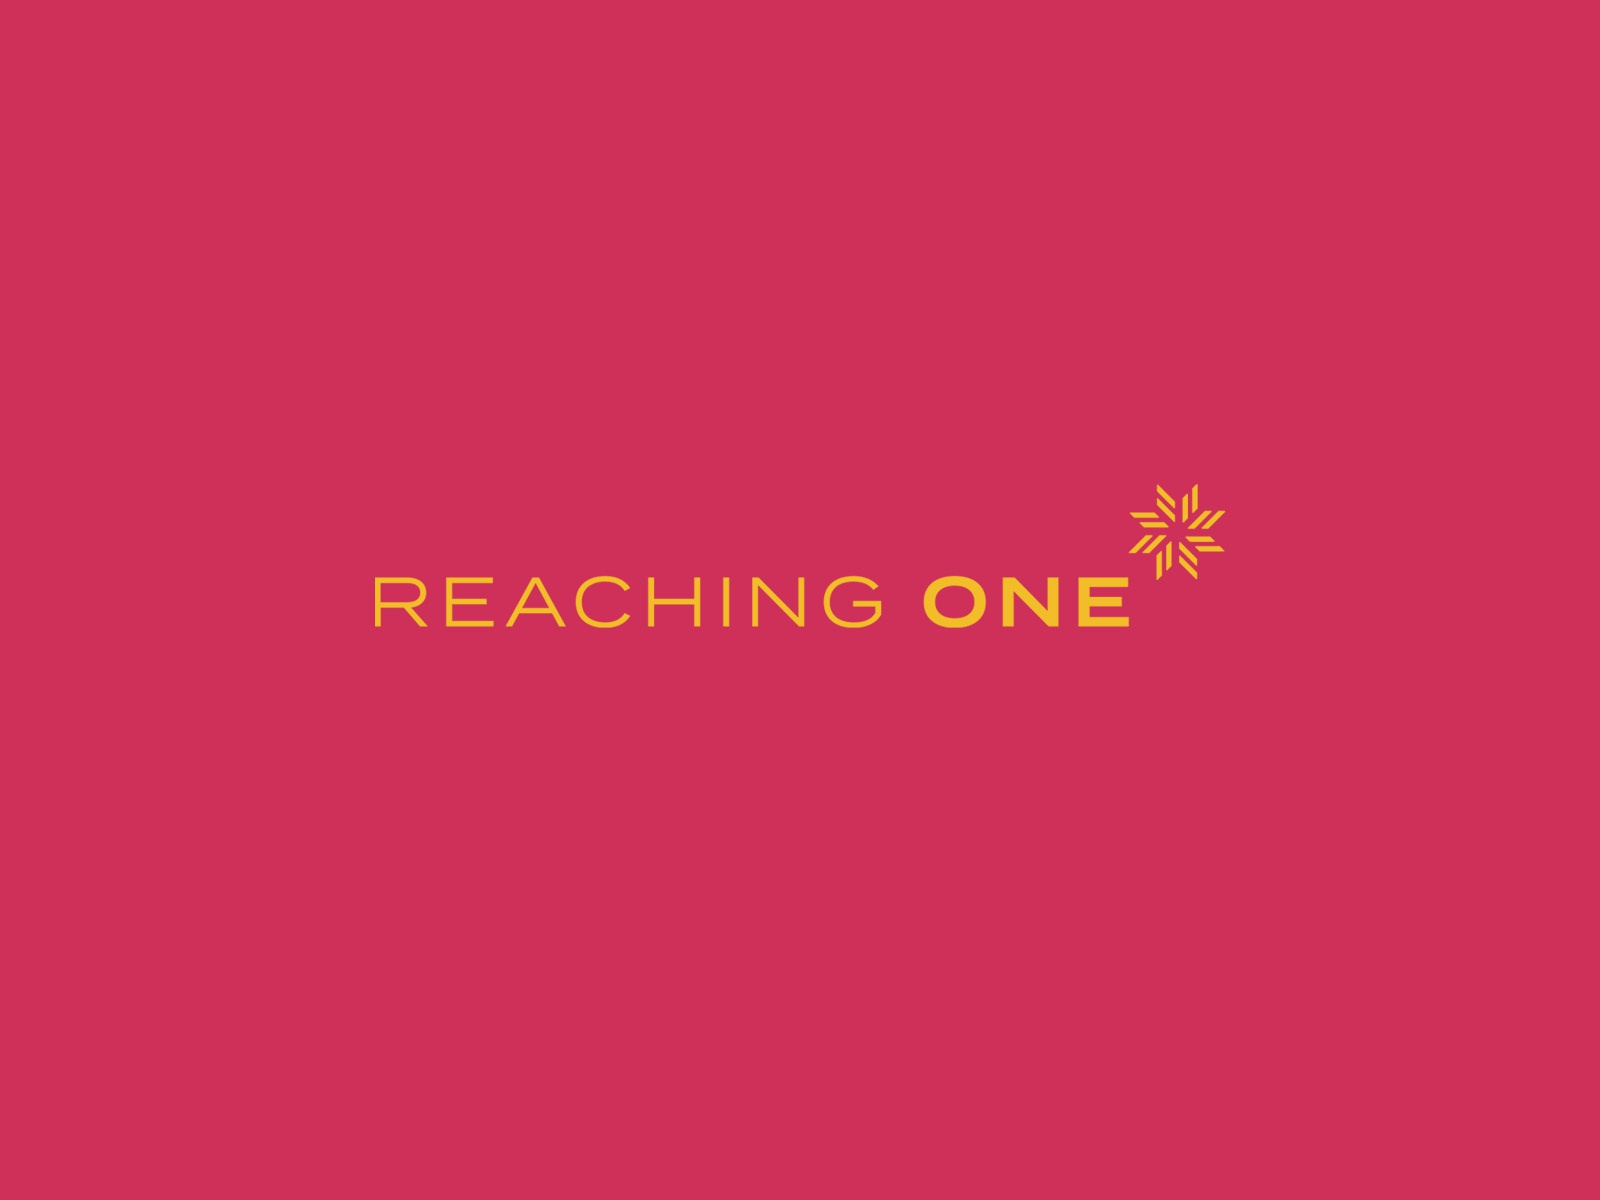 Reaching One   Concept